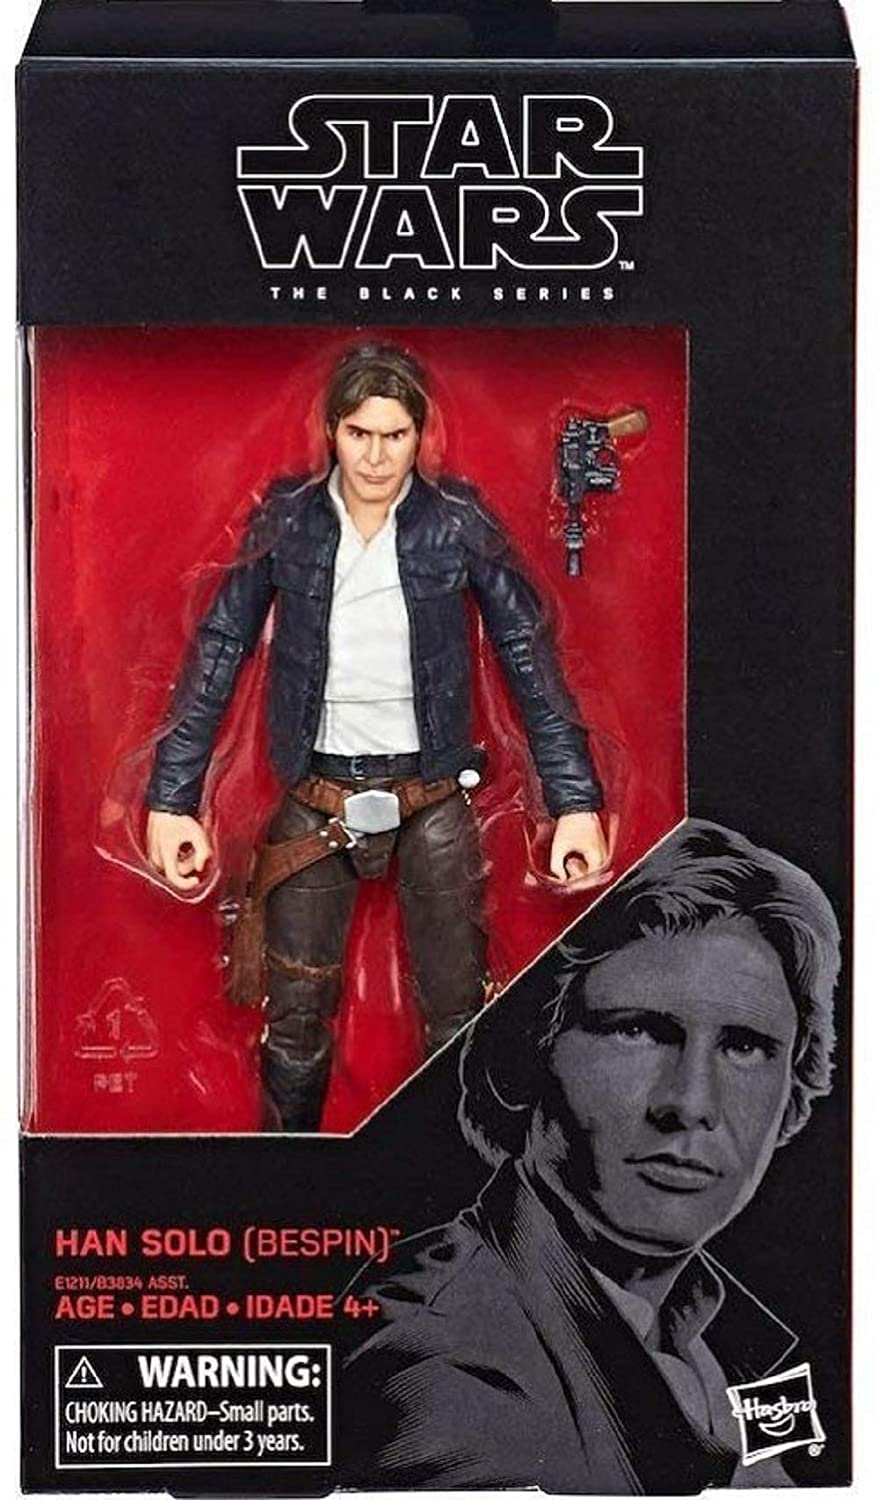 6-Inch Figure BESPIN Hasbo Star Wars The Black Series Han Solo